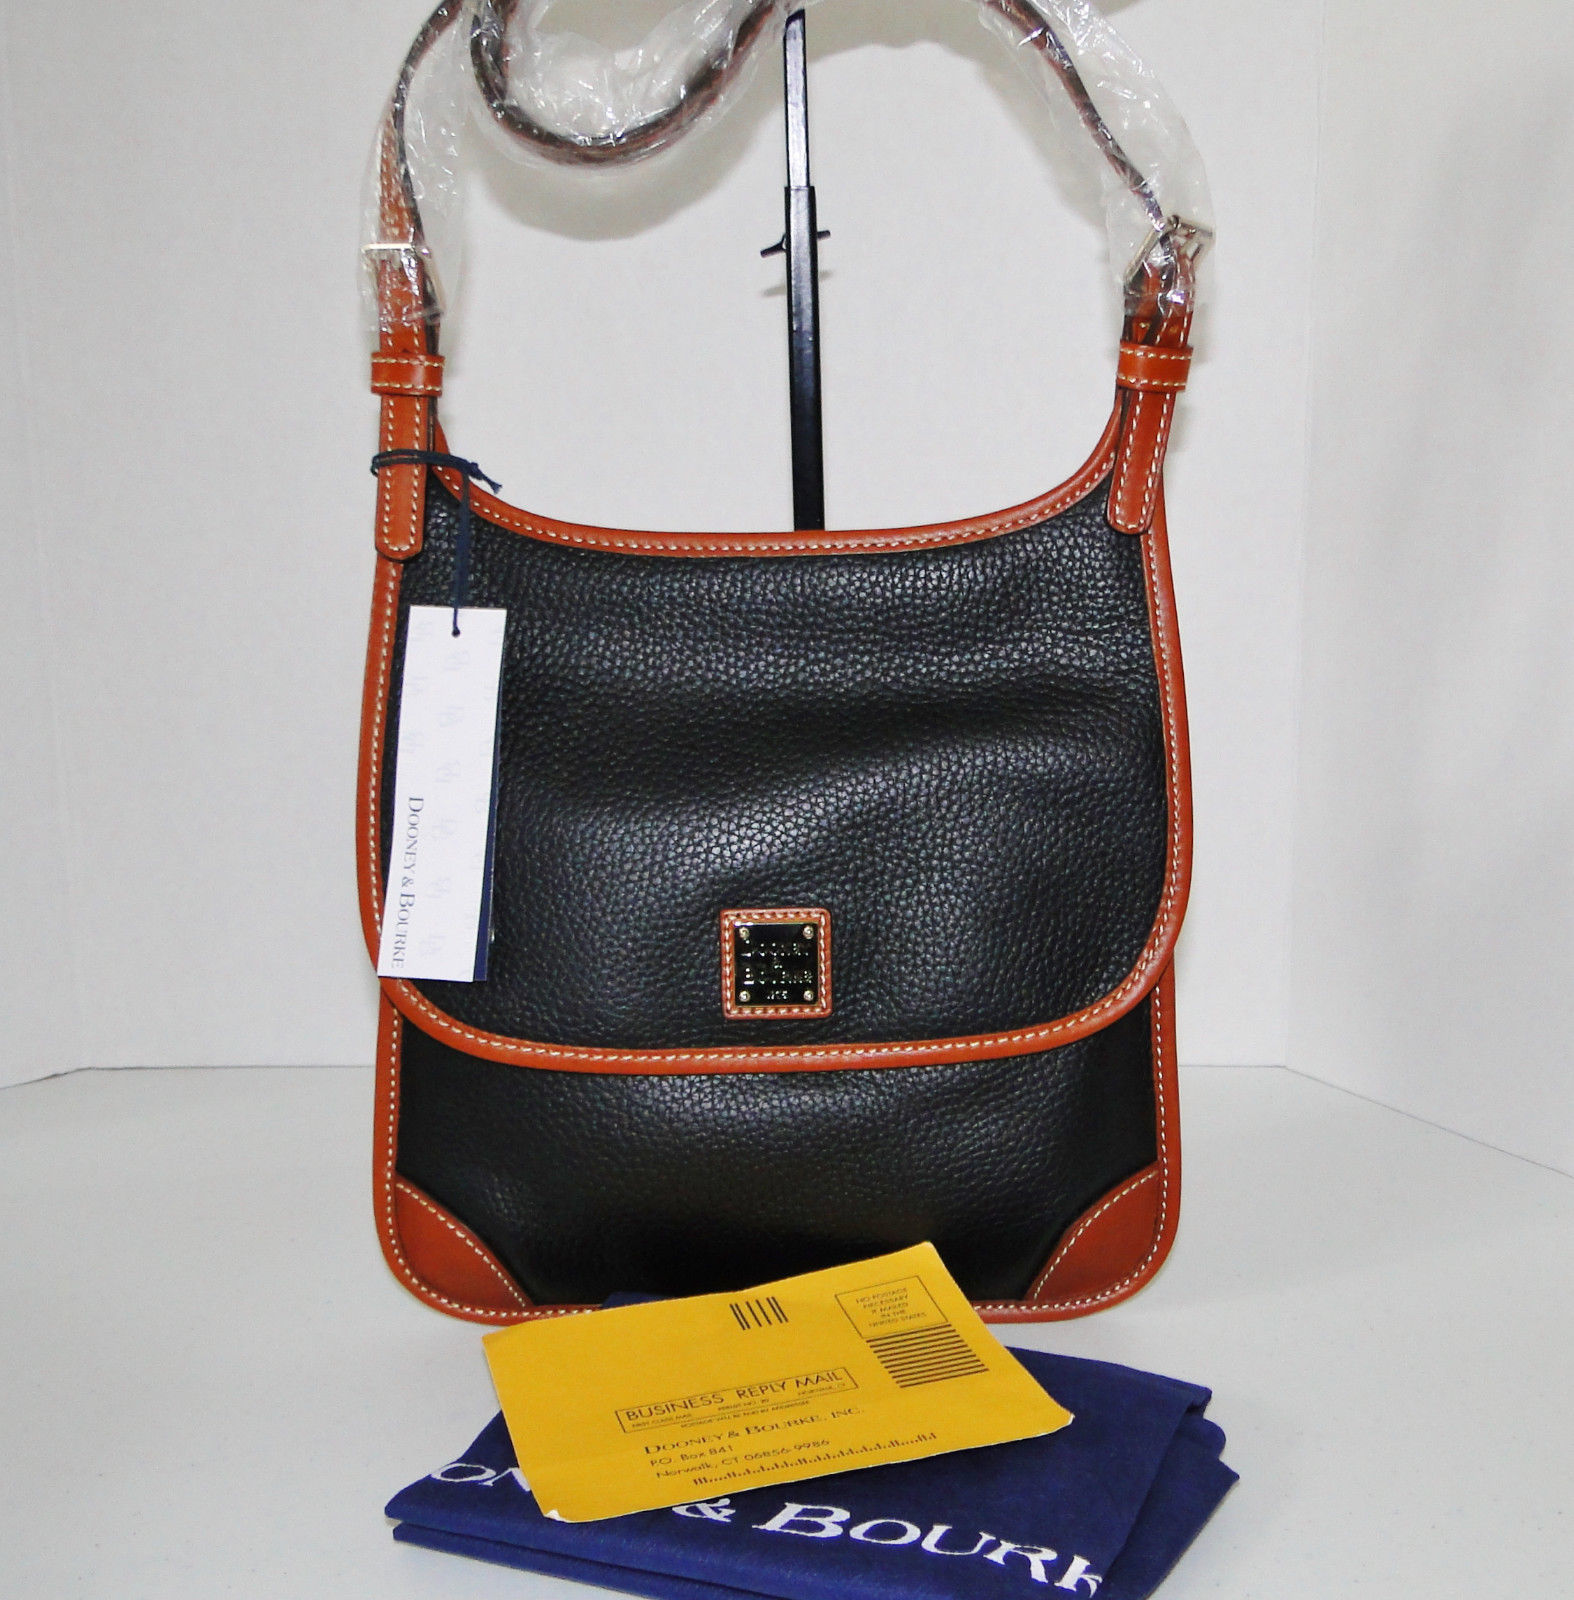 Dooney & Bourke Pebble Leather Black Saddle Crossbody